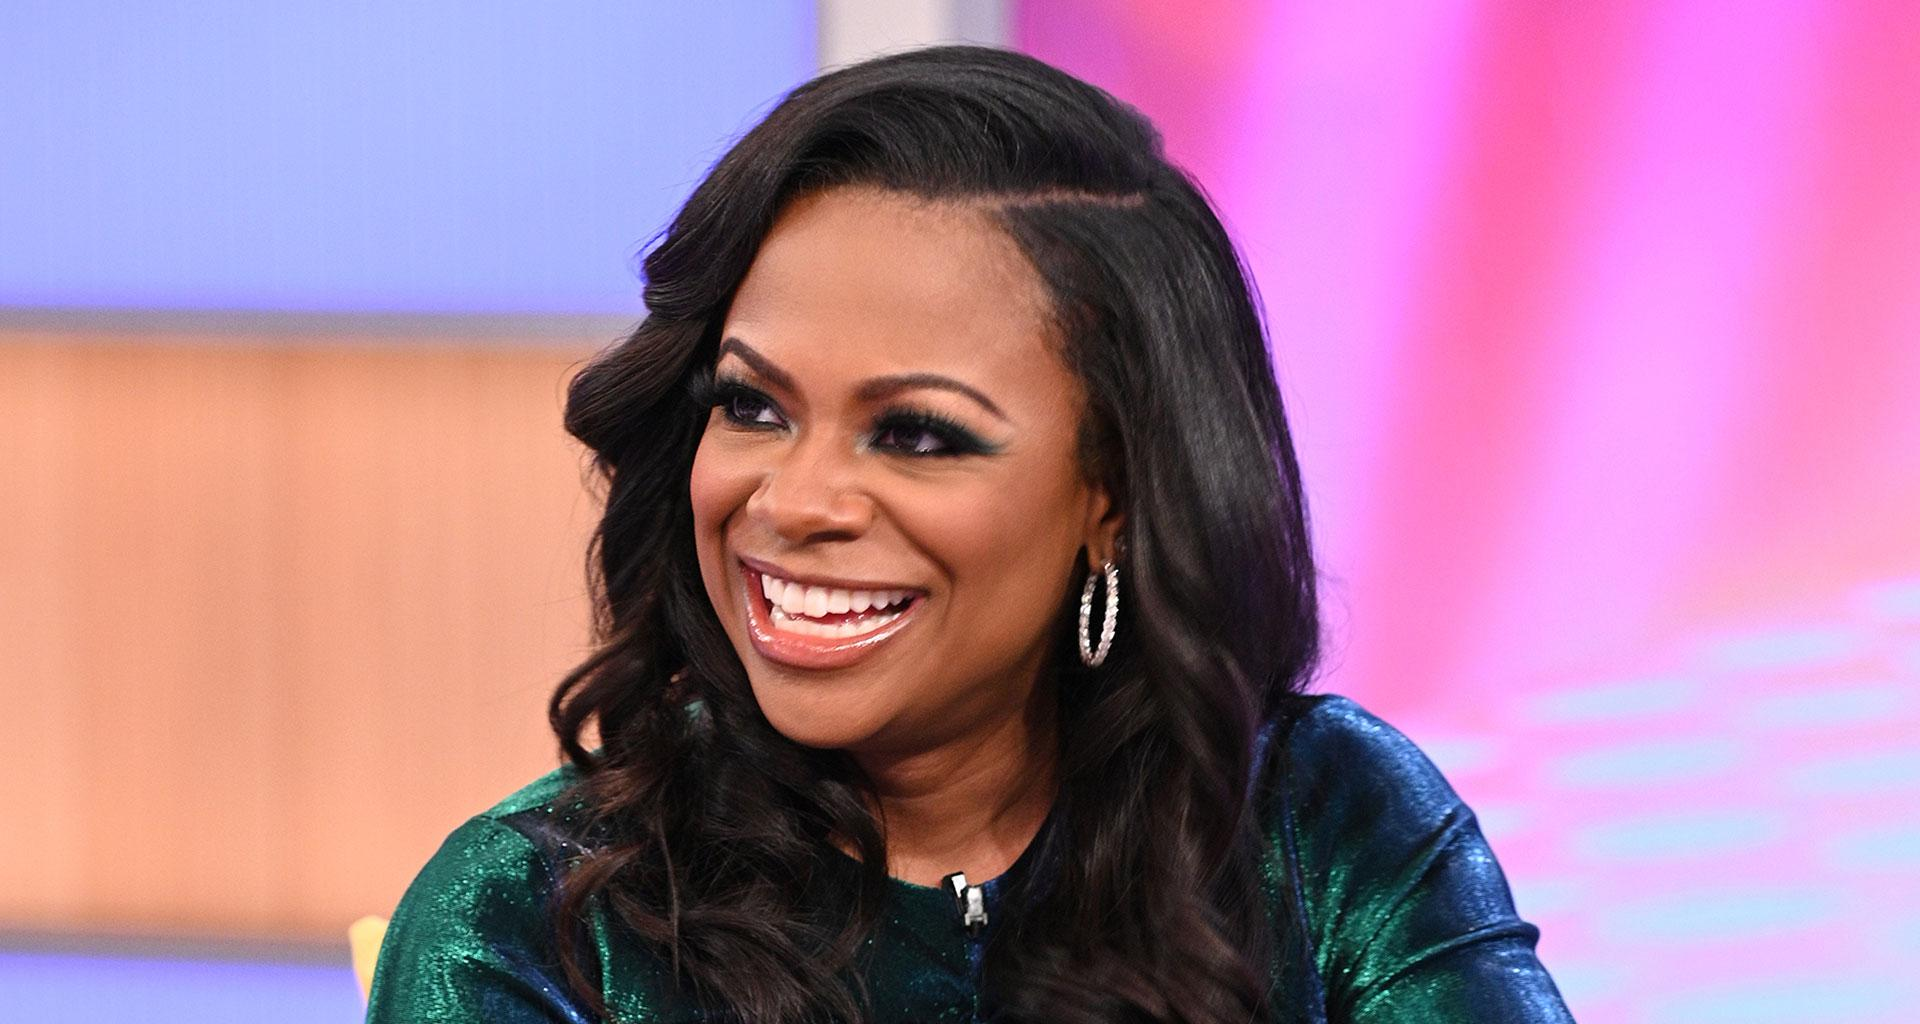 Kandi Burruss Tells Fans That The Stakes Have Never Been Higher For The Black Community